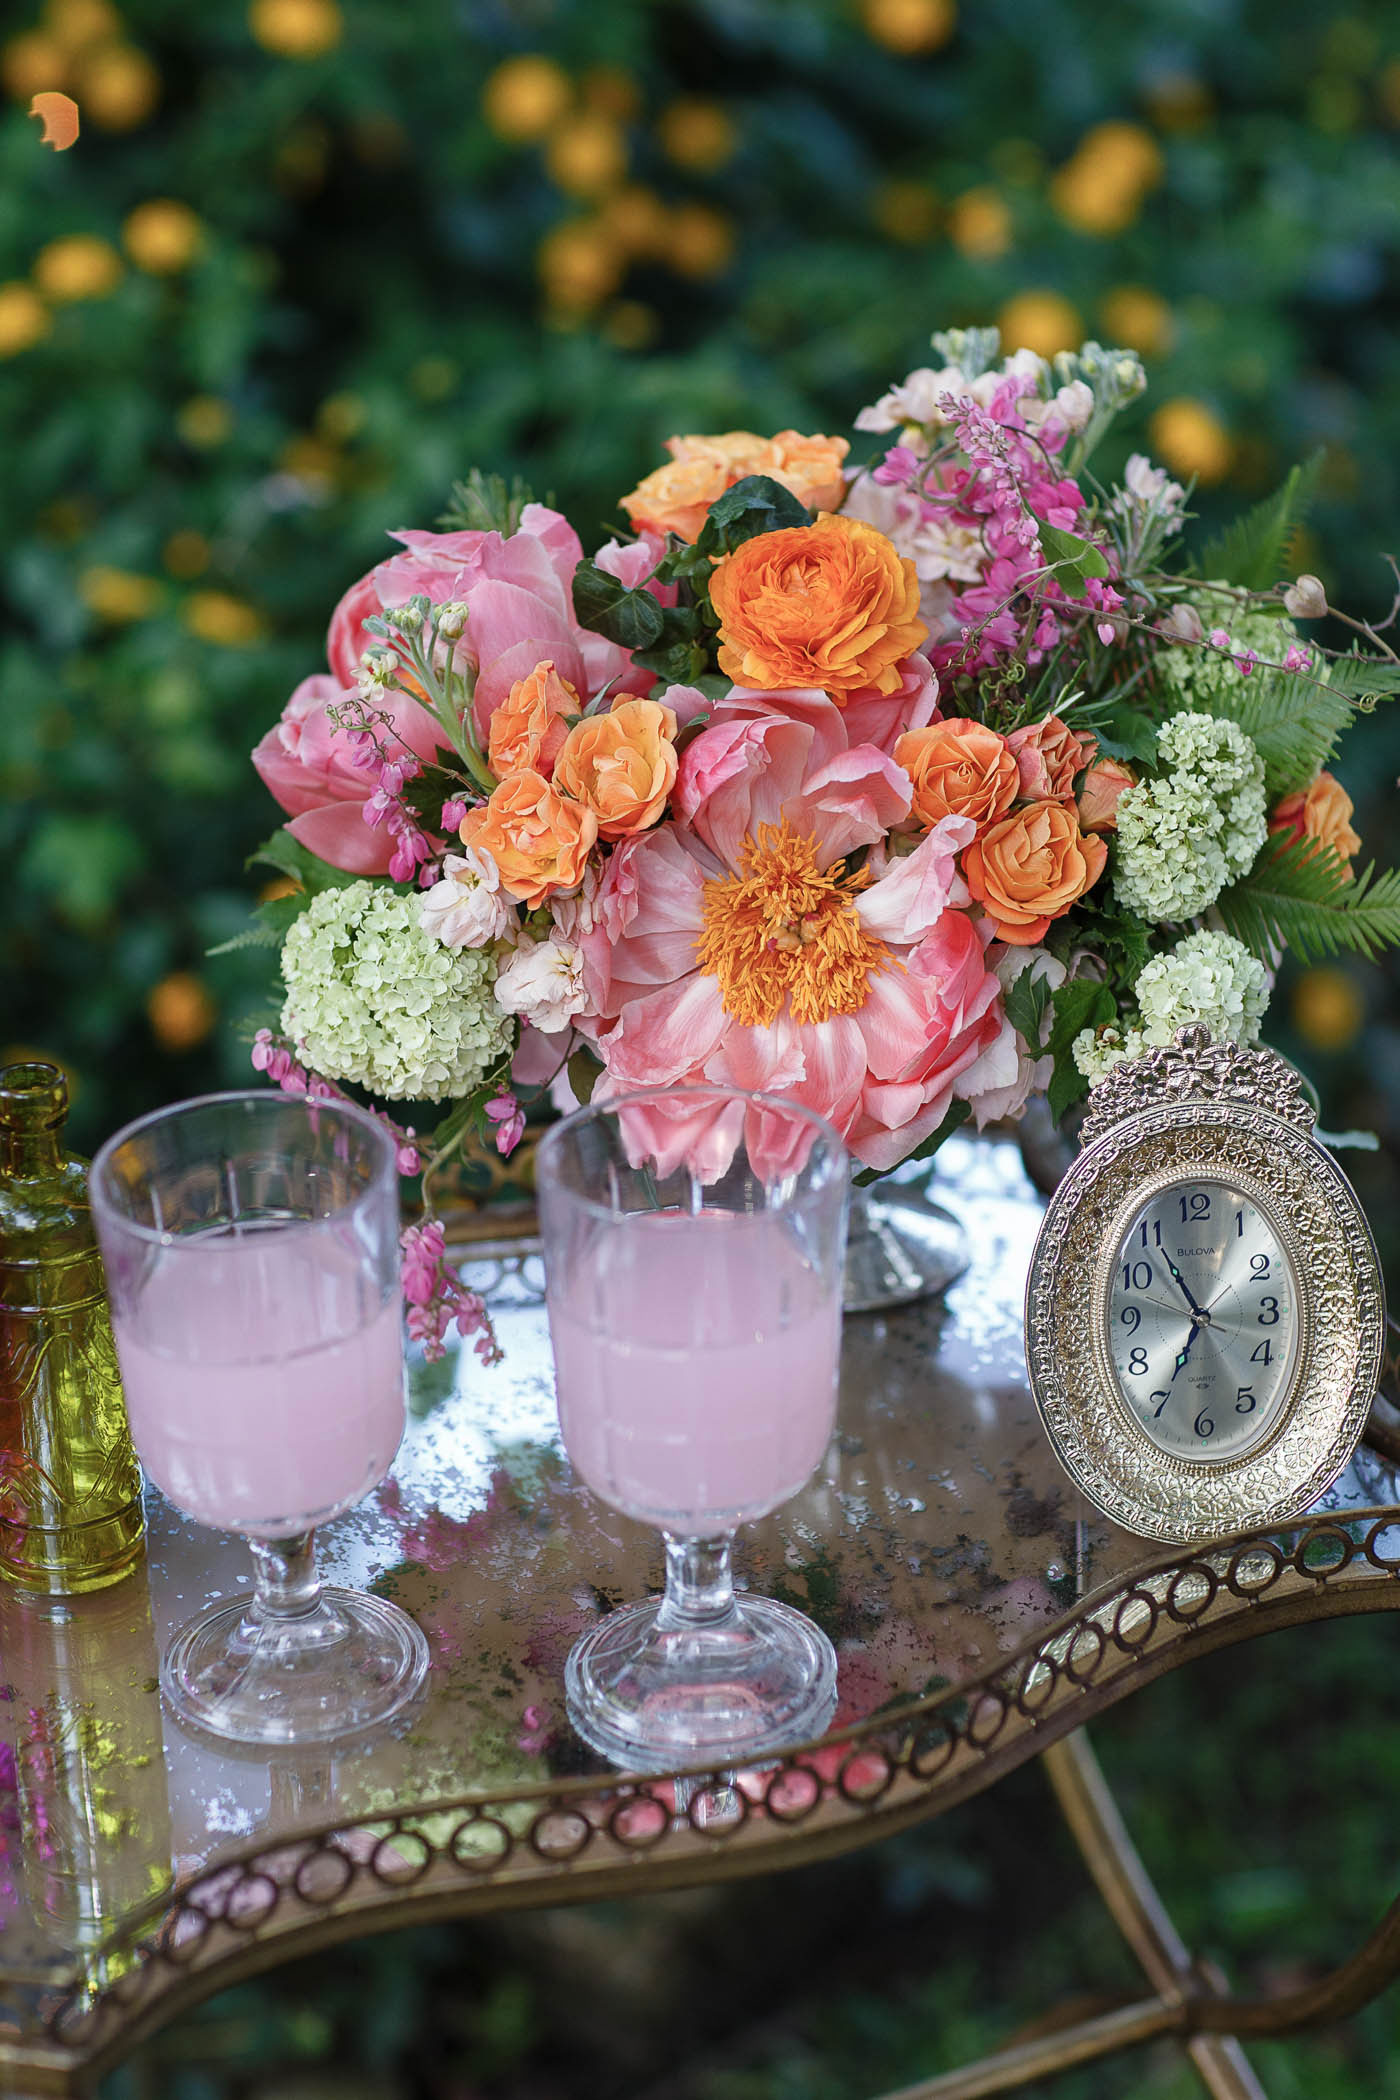 Cocktails at a Spring Garden Wedding